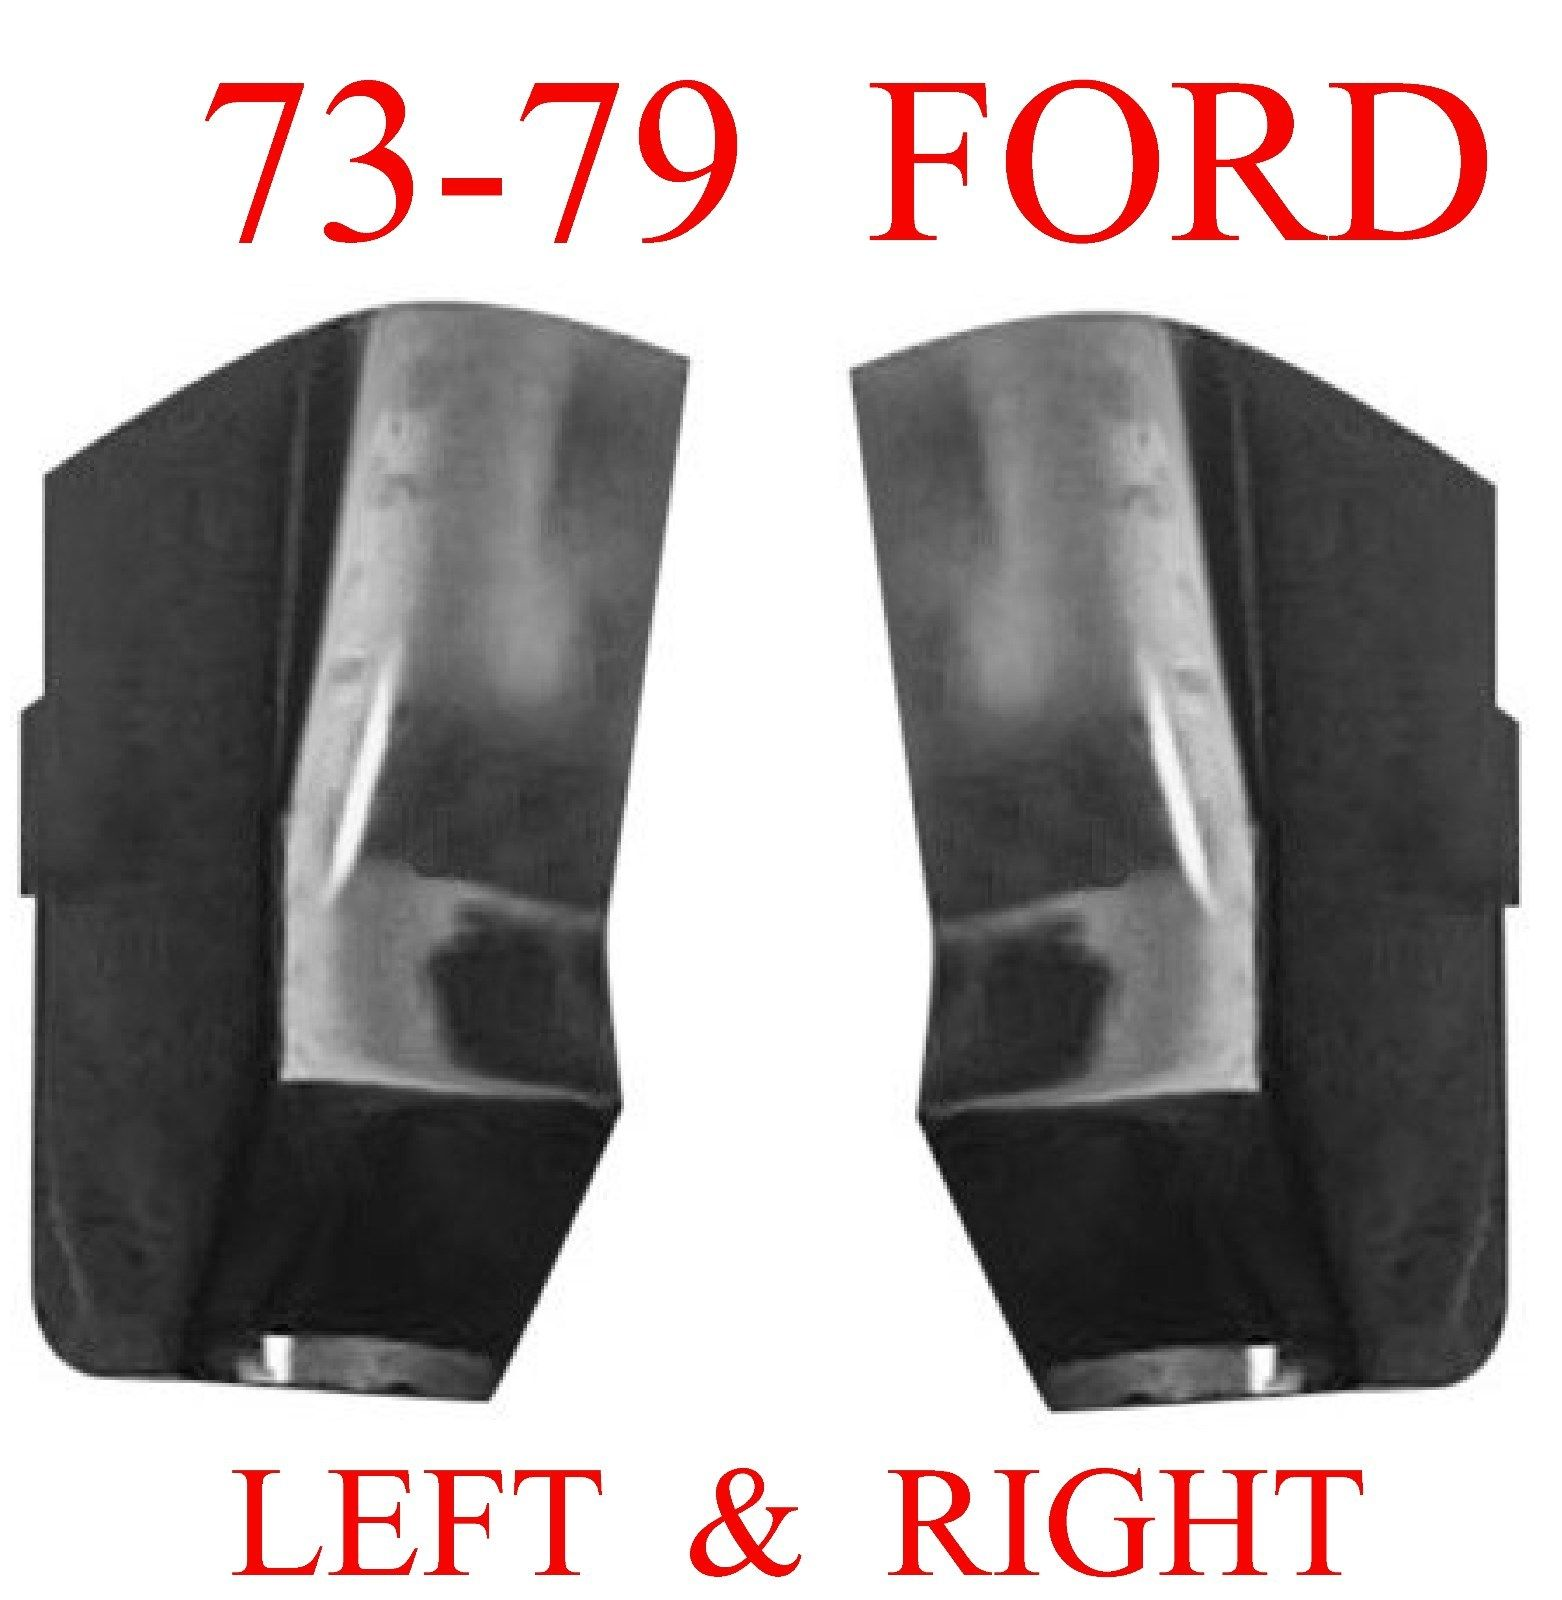 73-79 Ford Truck Cab Corner Set